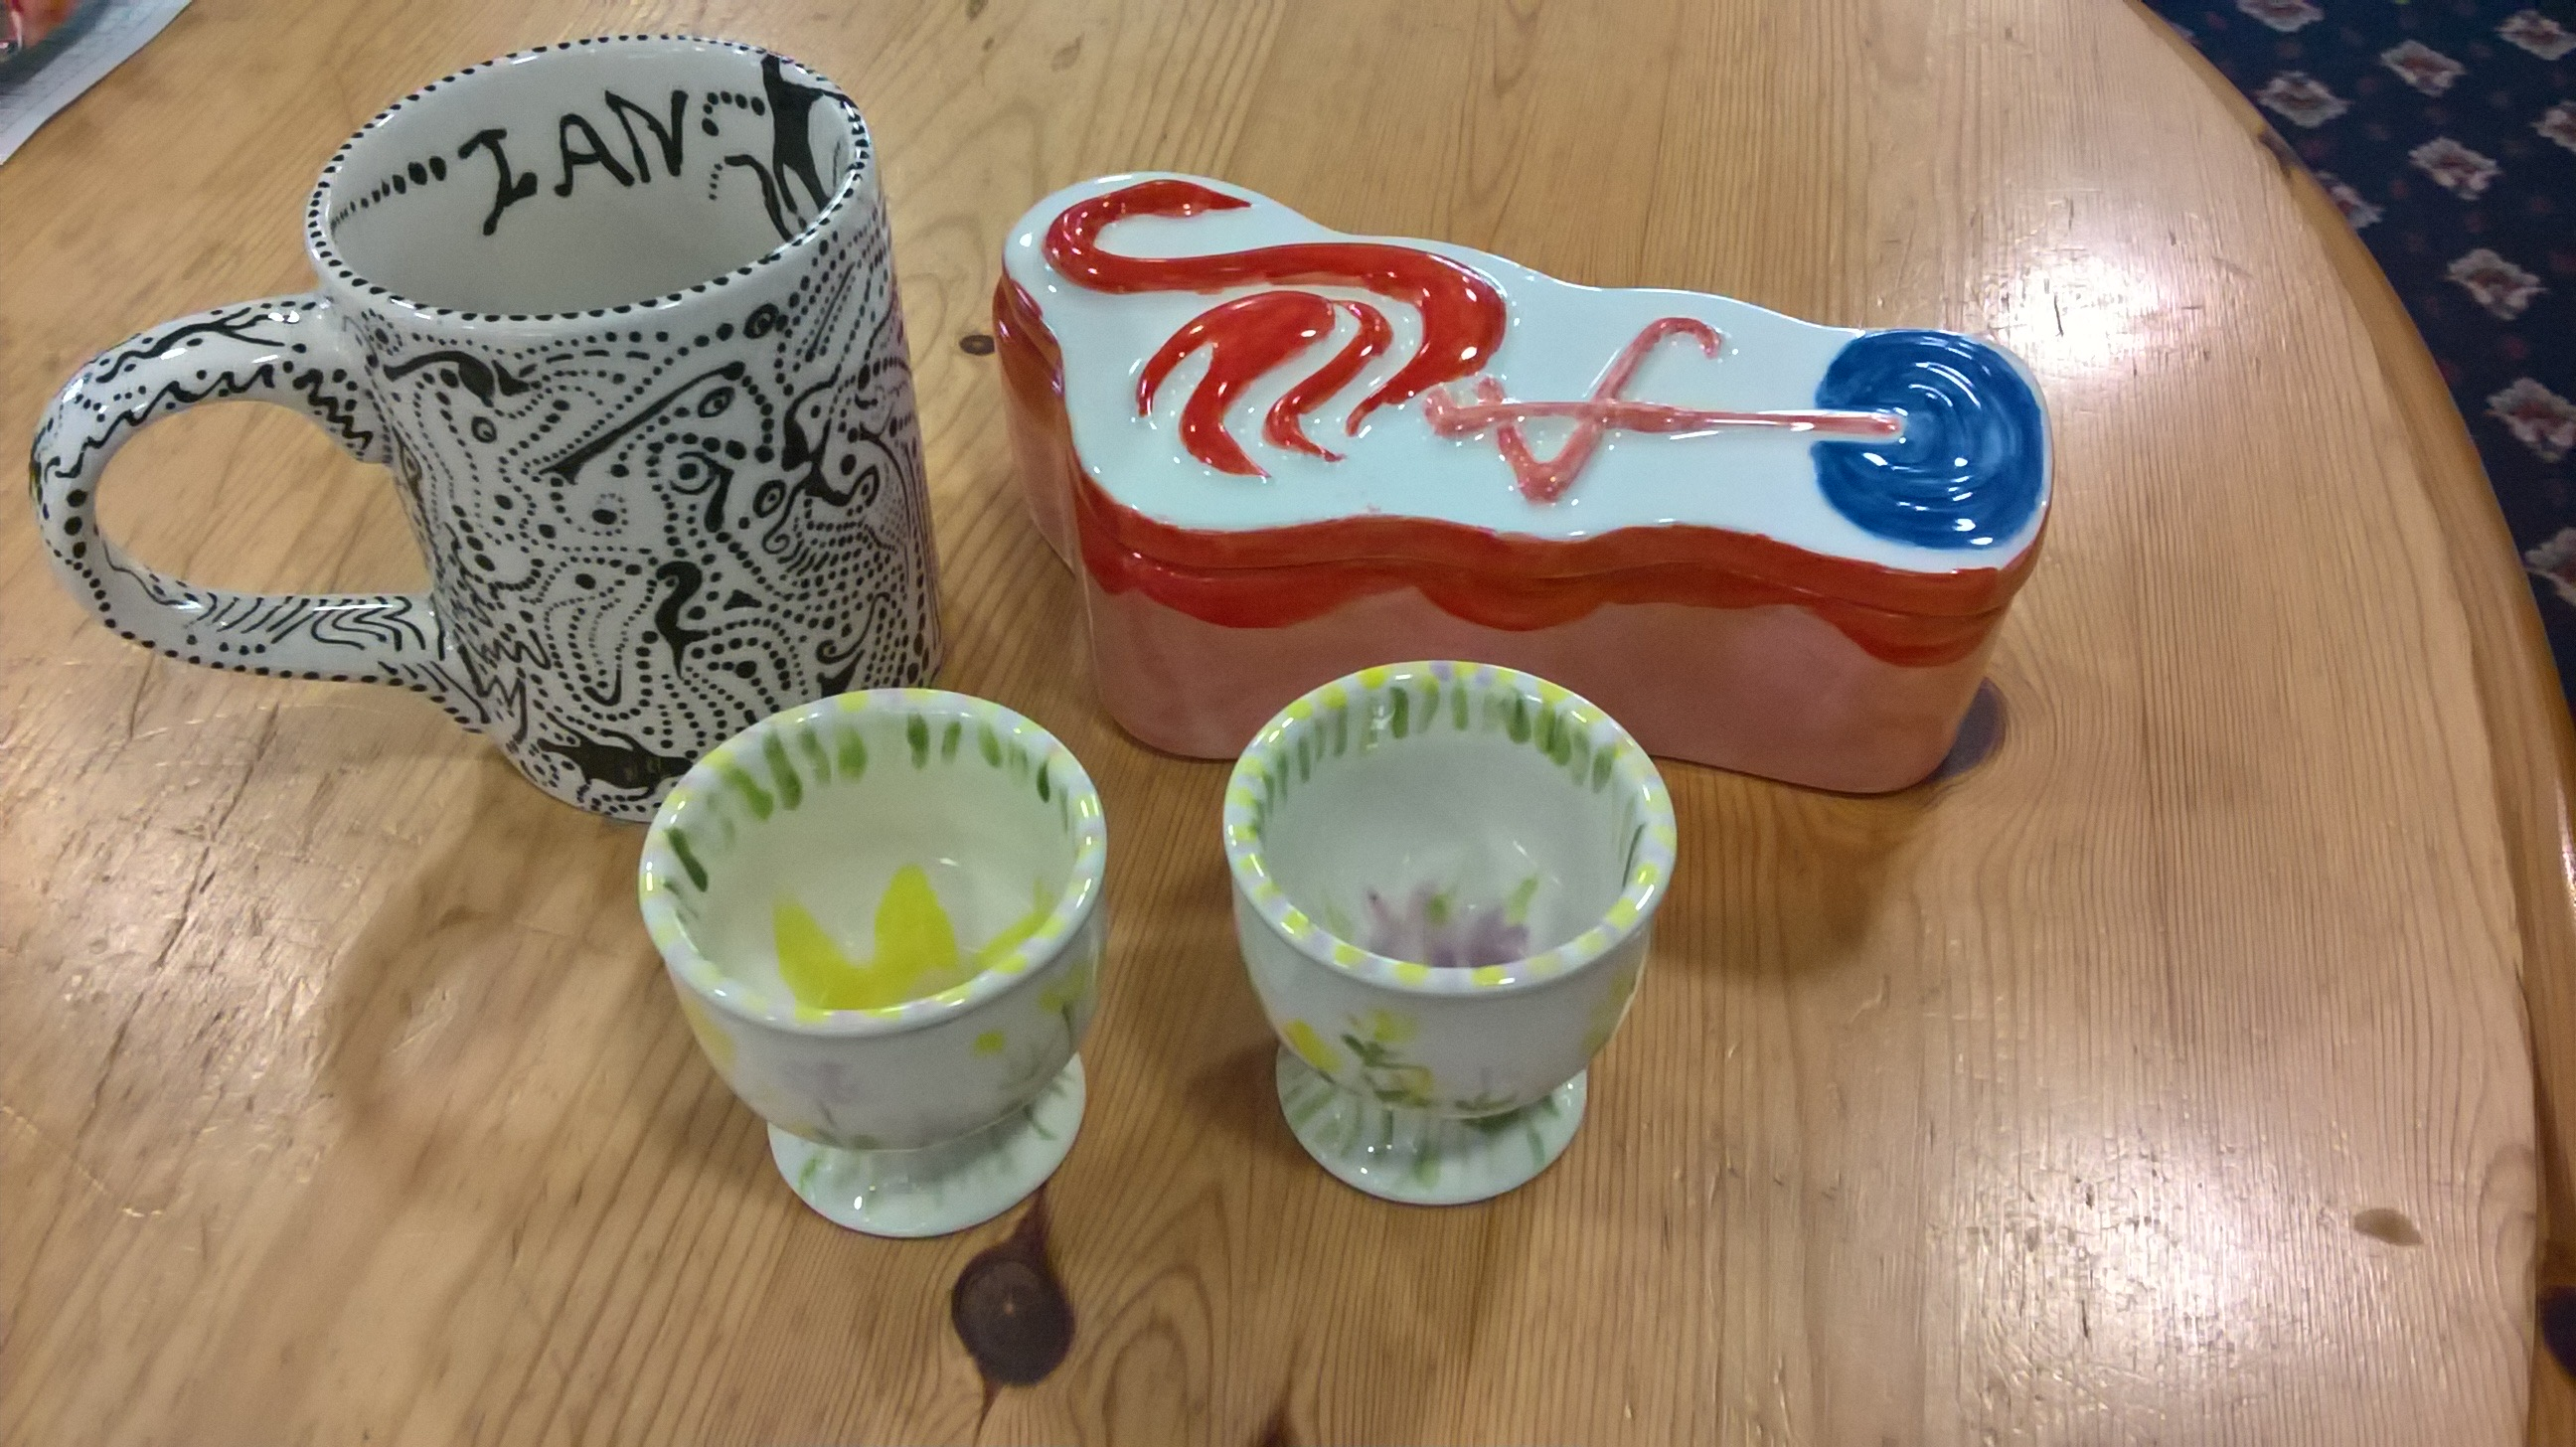 Selection of Pottery craft